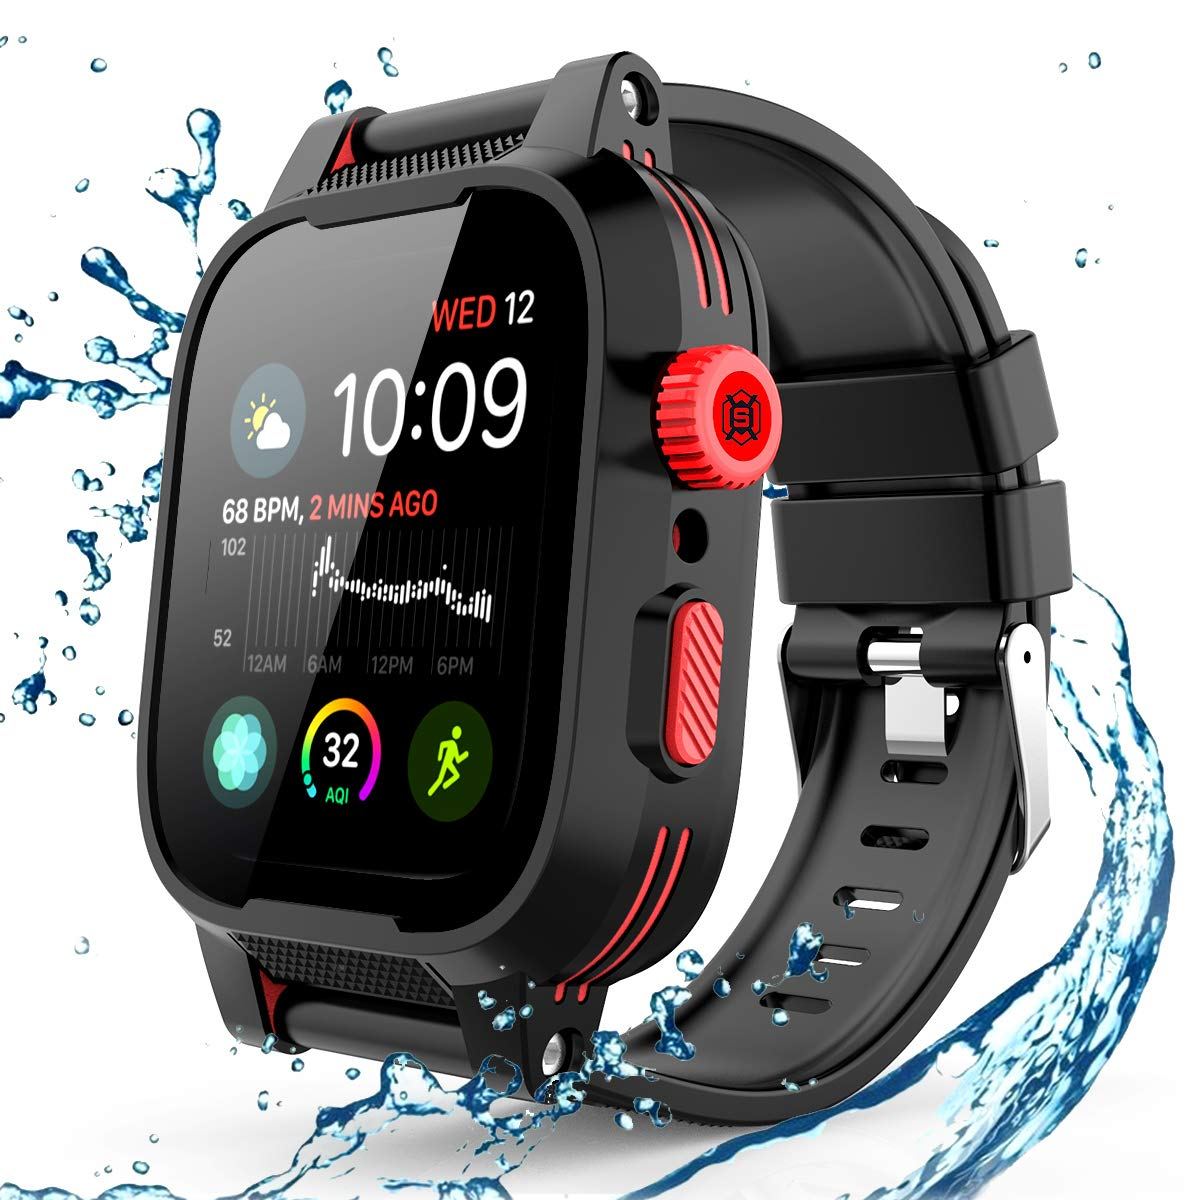 Willbox Waterproof Case for 44mm Apple Watch Series 4, IP68 Certified Shockproof Impact Resistant Durable Rugged Protective iWatch Case with Premium Soft Strap Bands for Apple Watch Series 4, 44mm by Willbox